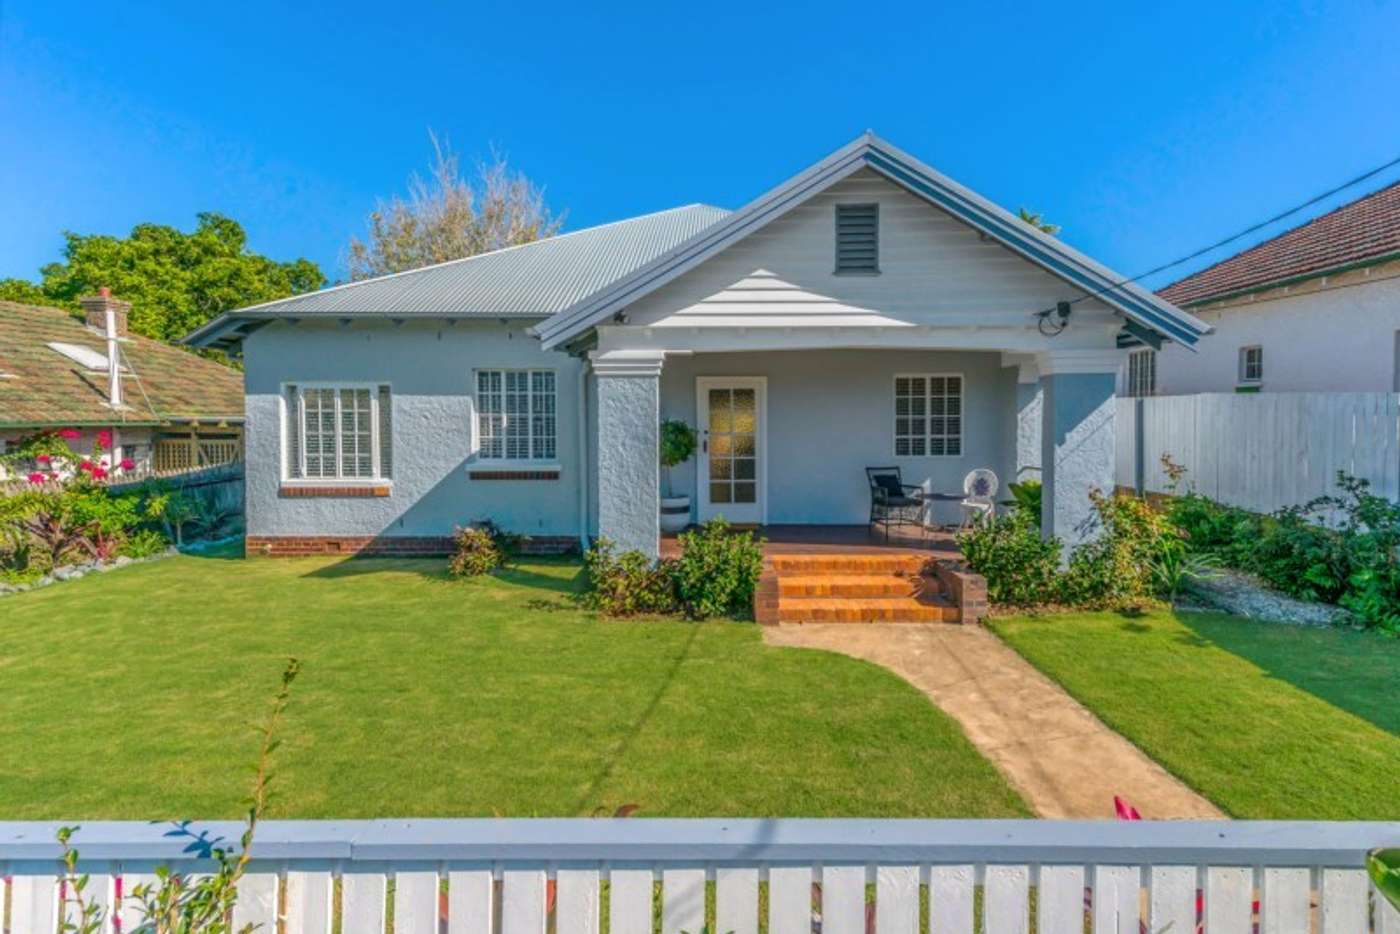 Main view of Homely house listing, 16 Lind Street, Newmarket QLD 4051